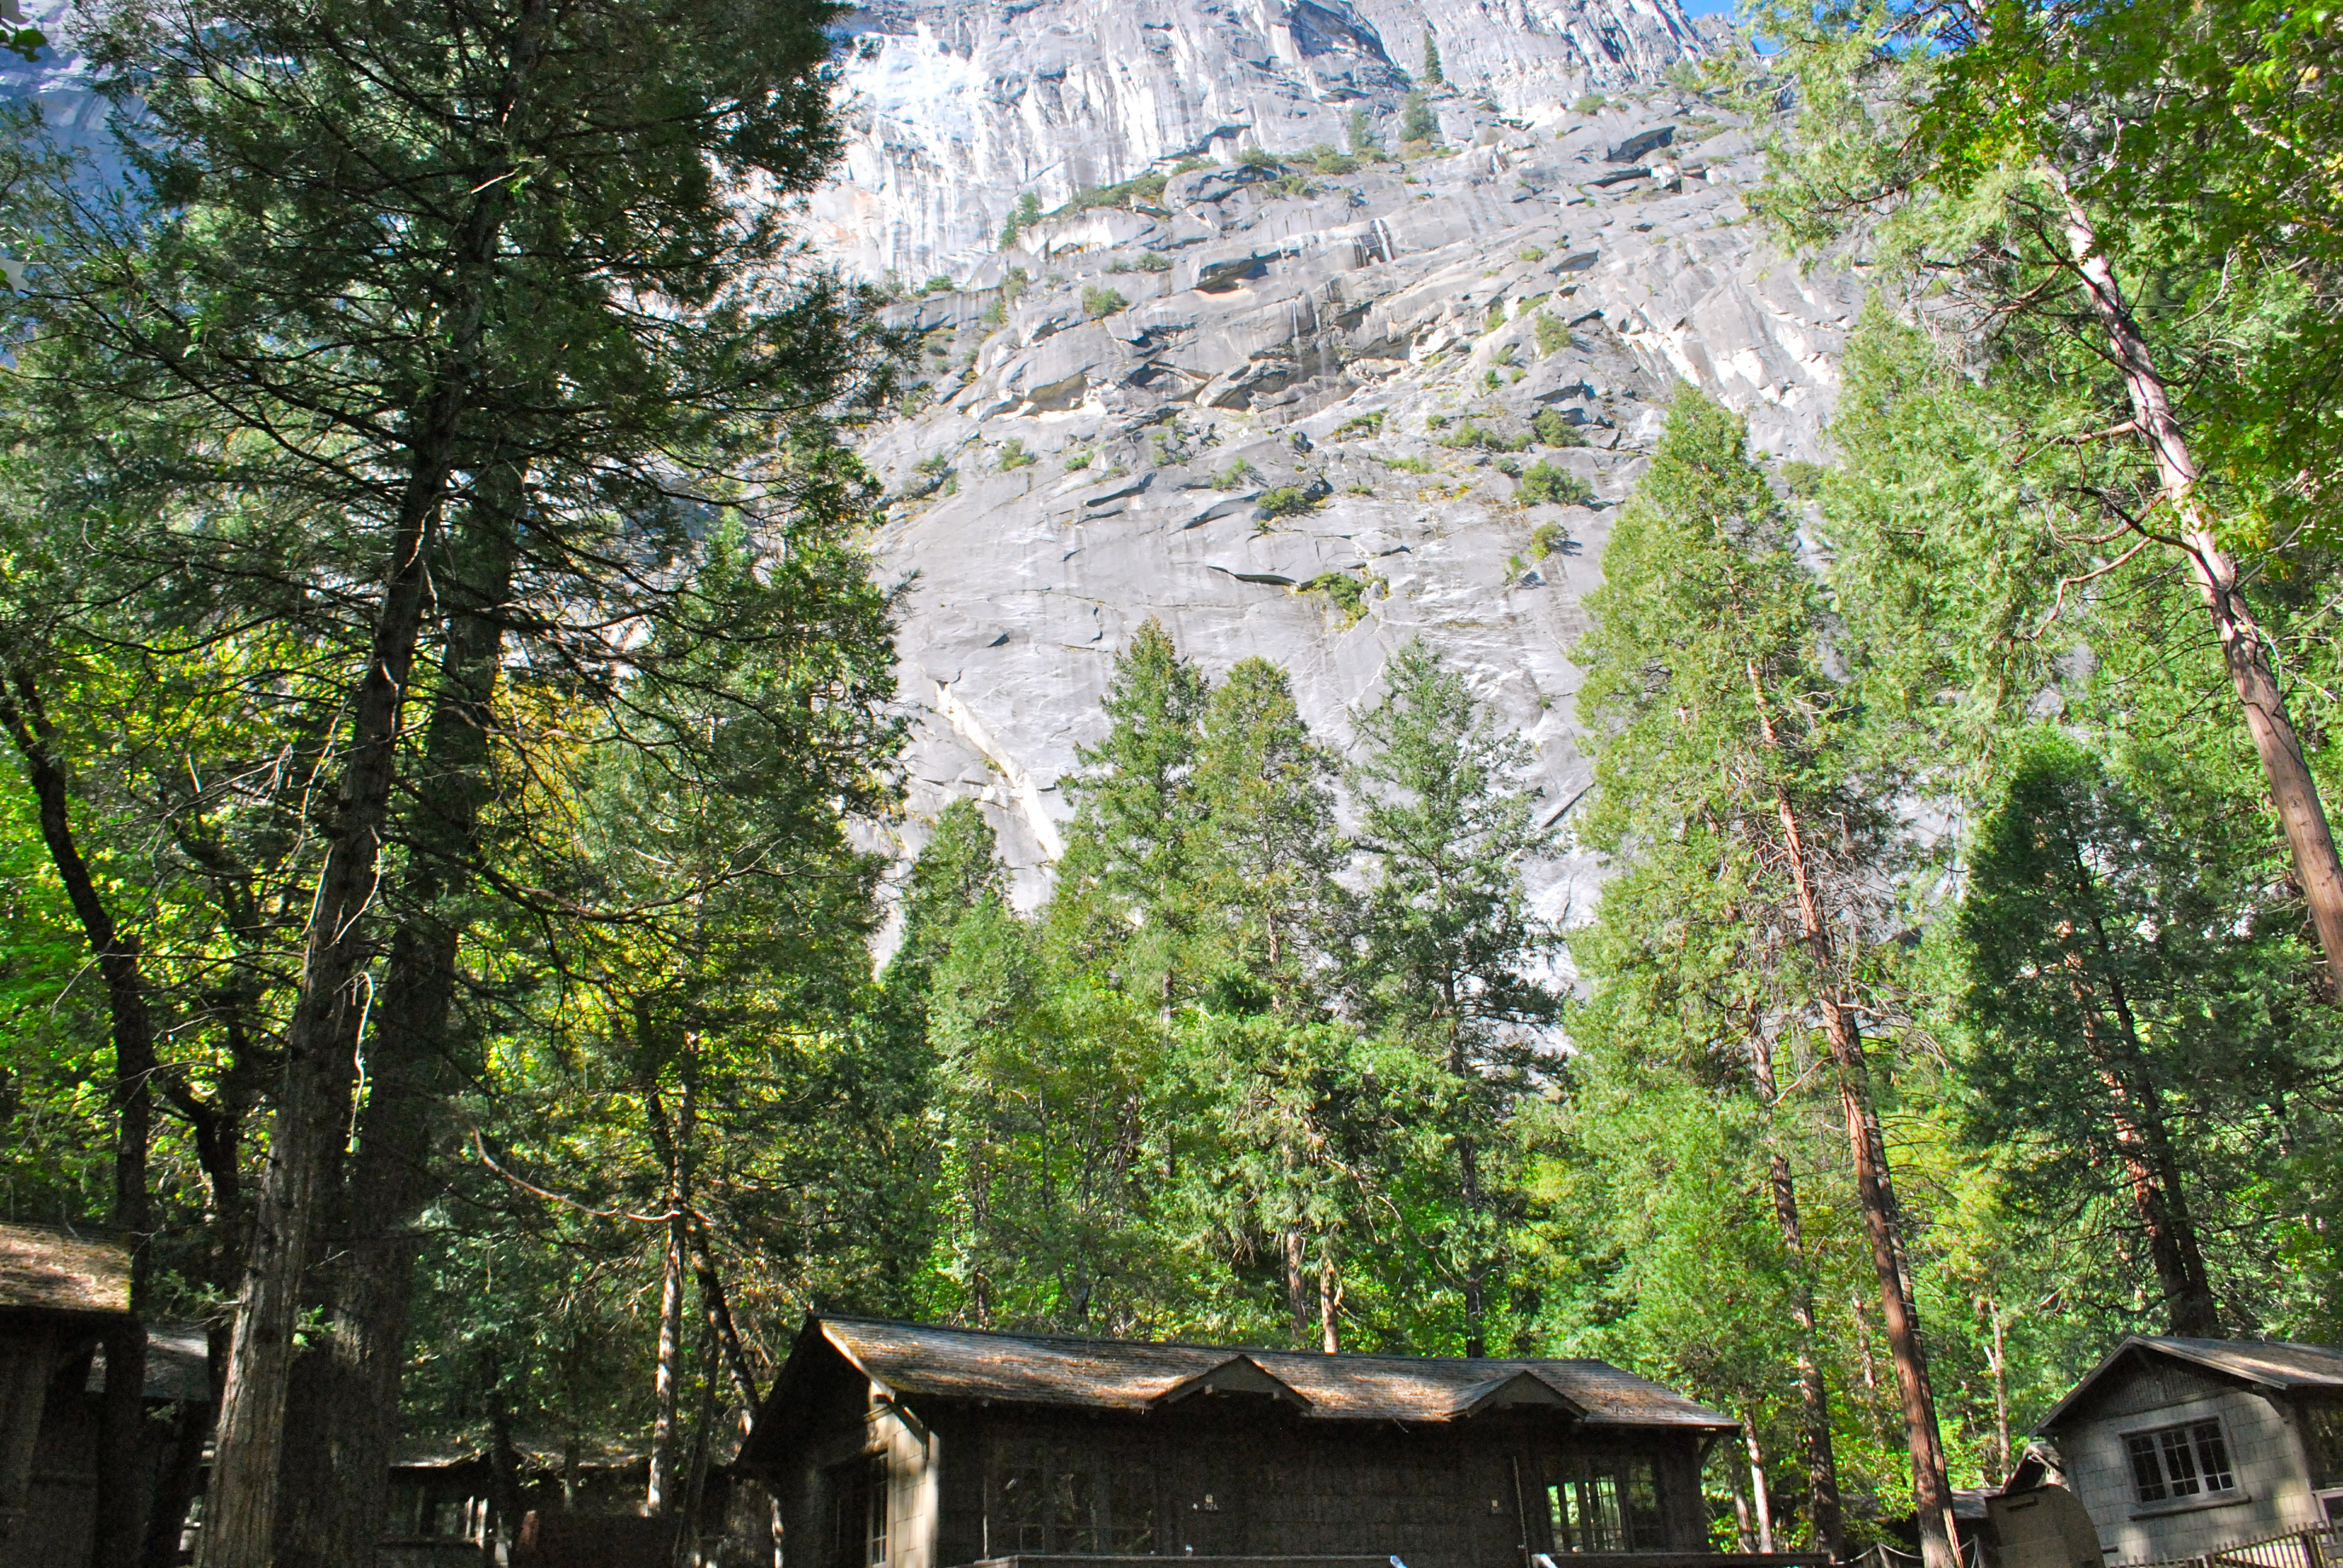 winter yosemite and cabins of the cabinfromroadnorth view a info cabin home vacation forest lodge house family road fallandwinter